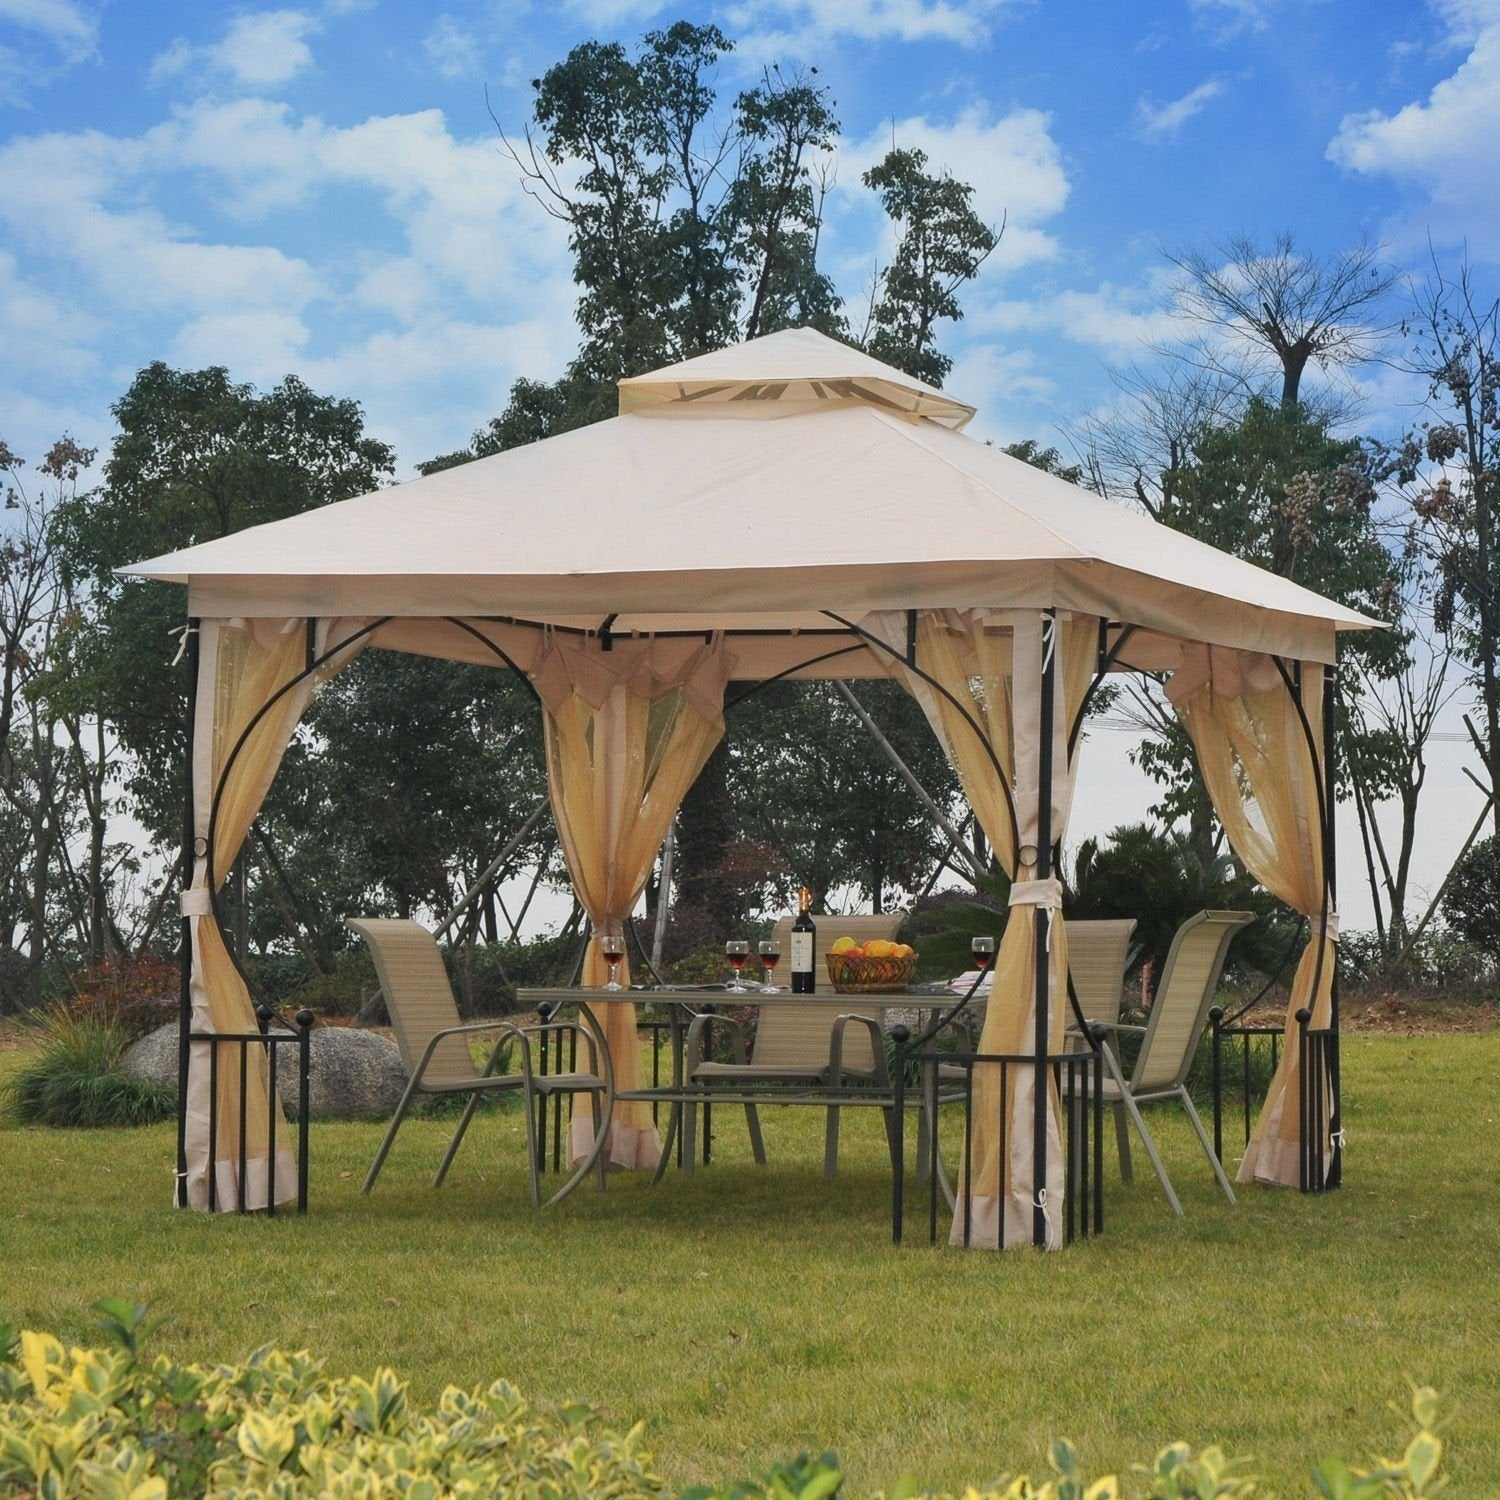 Ordinaire Outsunny Steel Outdoor Garden Gazebo With Mosquito Netting